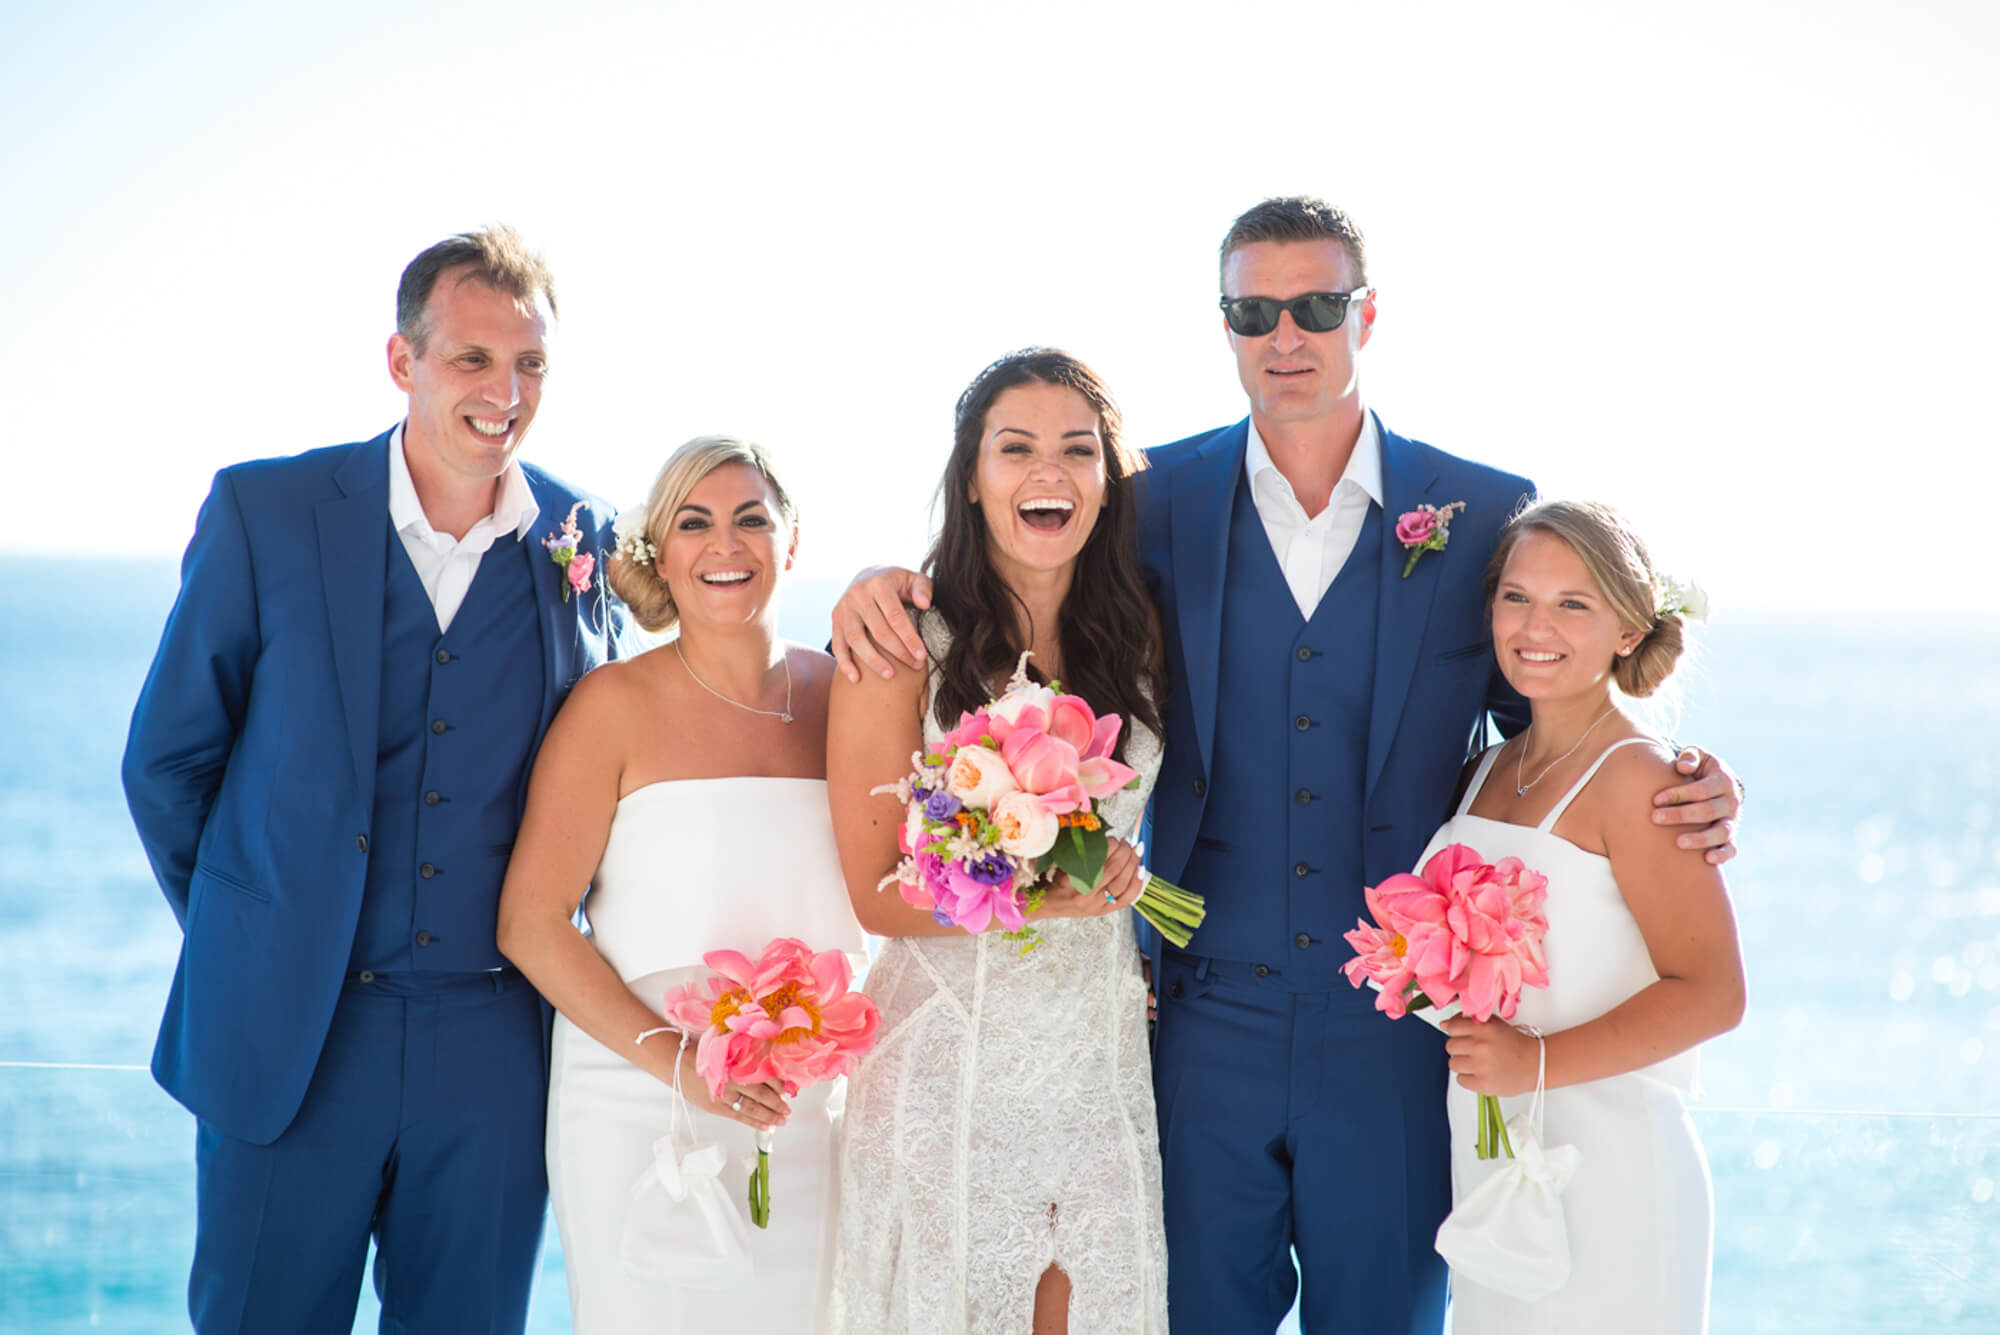 Colourful flowers wedding bouquet bride groom bridal party beach venue sunset view Galai Lahav